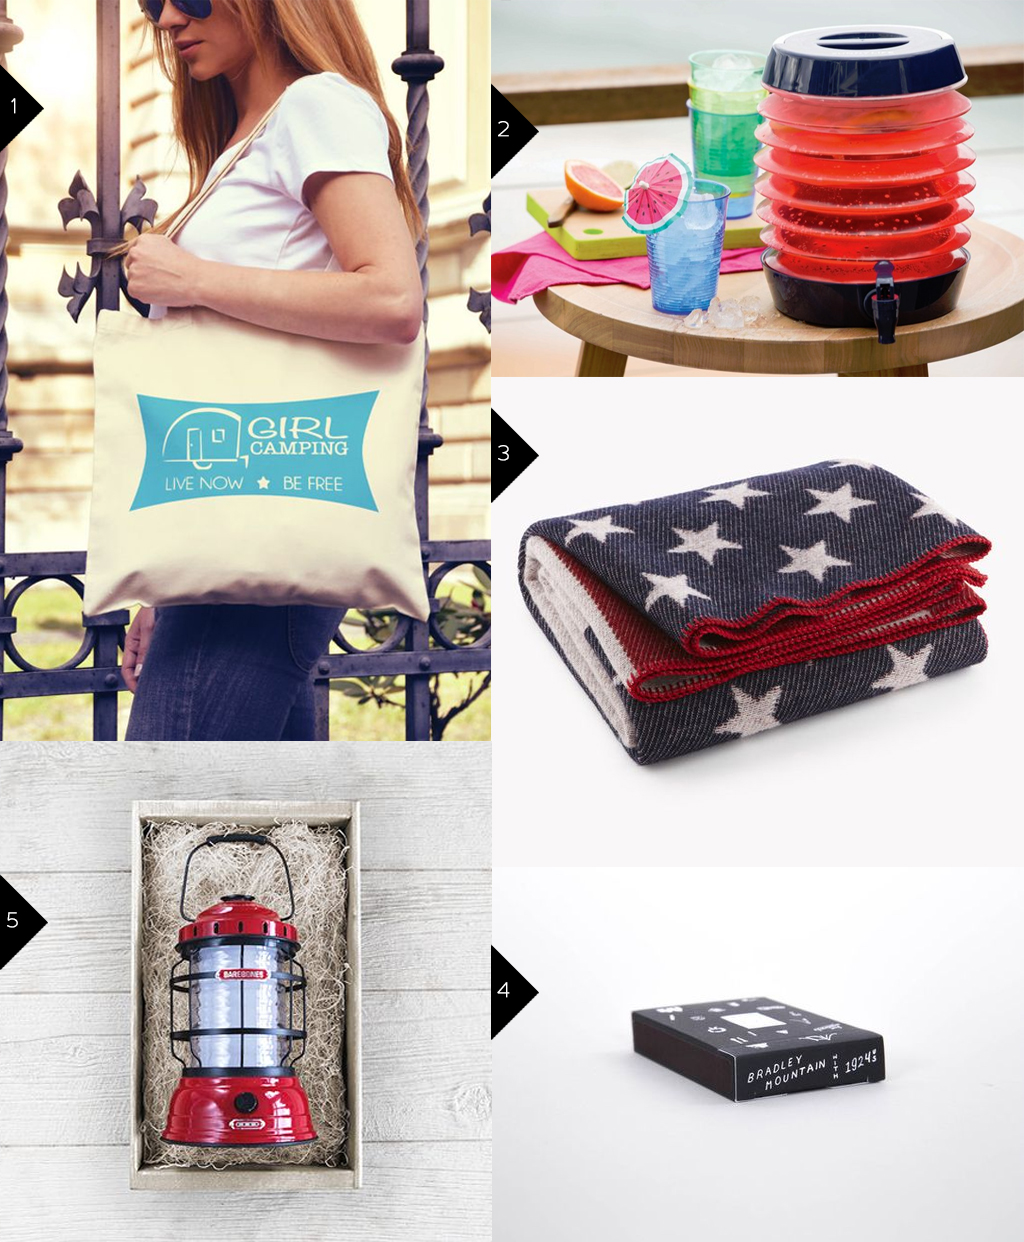 Fabulous Finds for your RV via J5MM.com